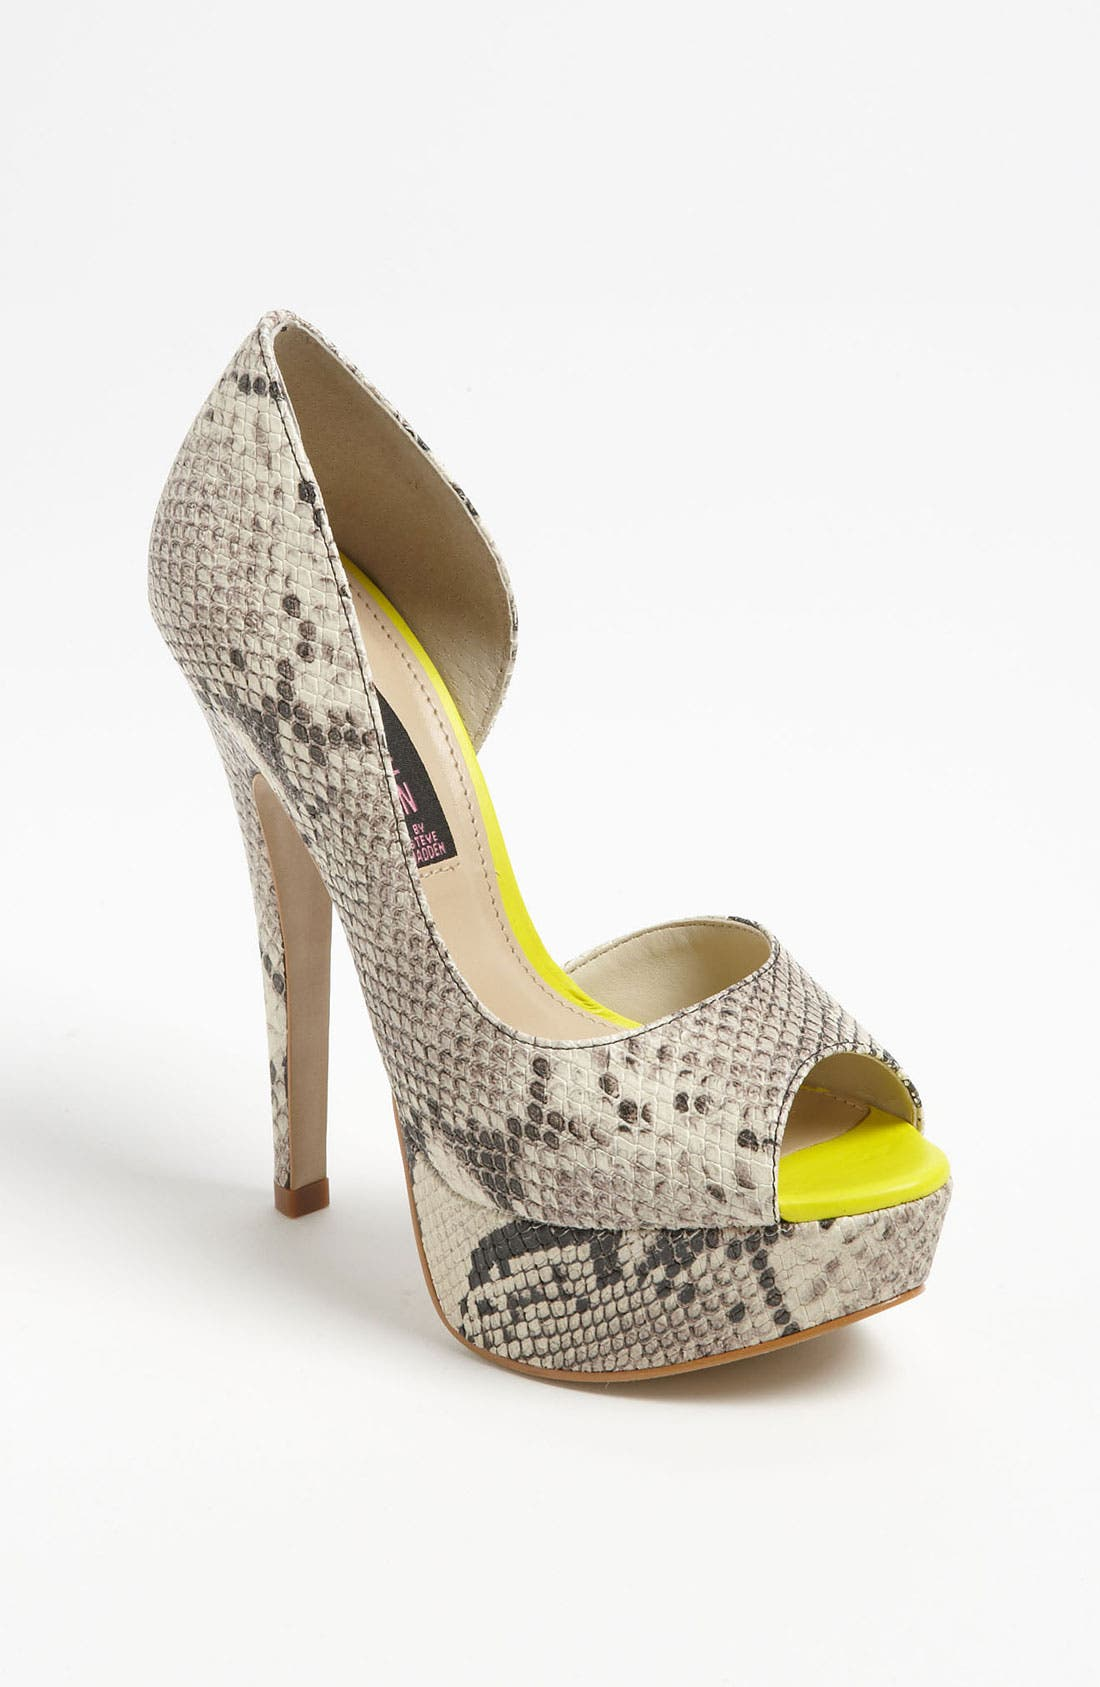 Alternate Image 1 Selected - Steven by Steve Madden 'Amplifyd' Platform Pump